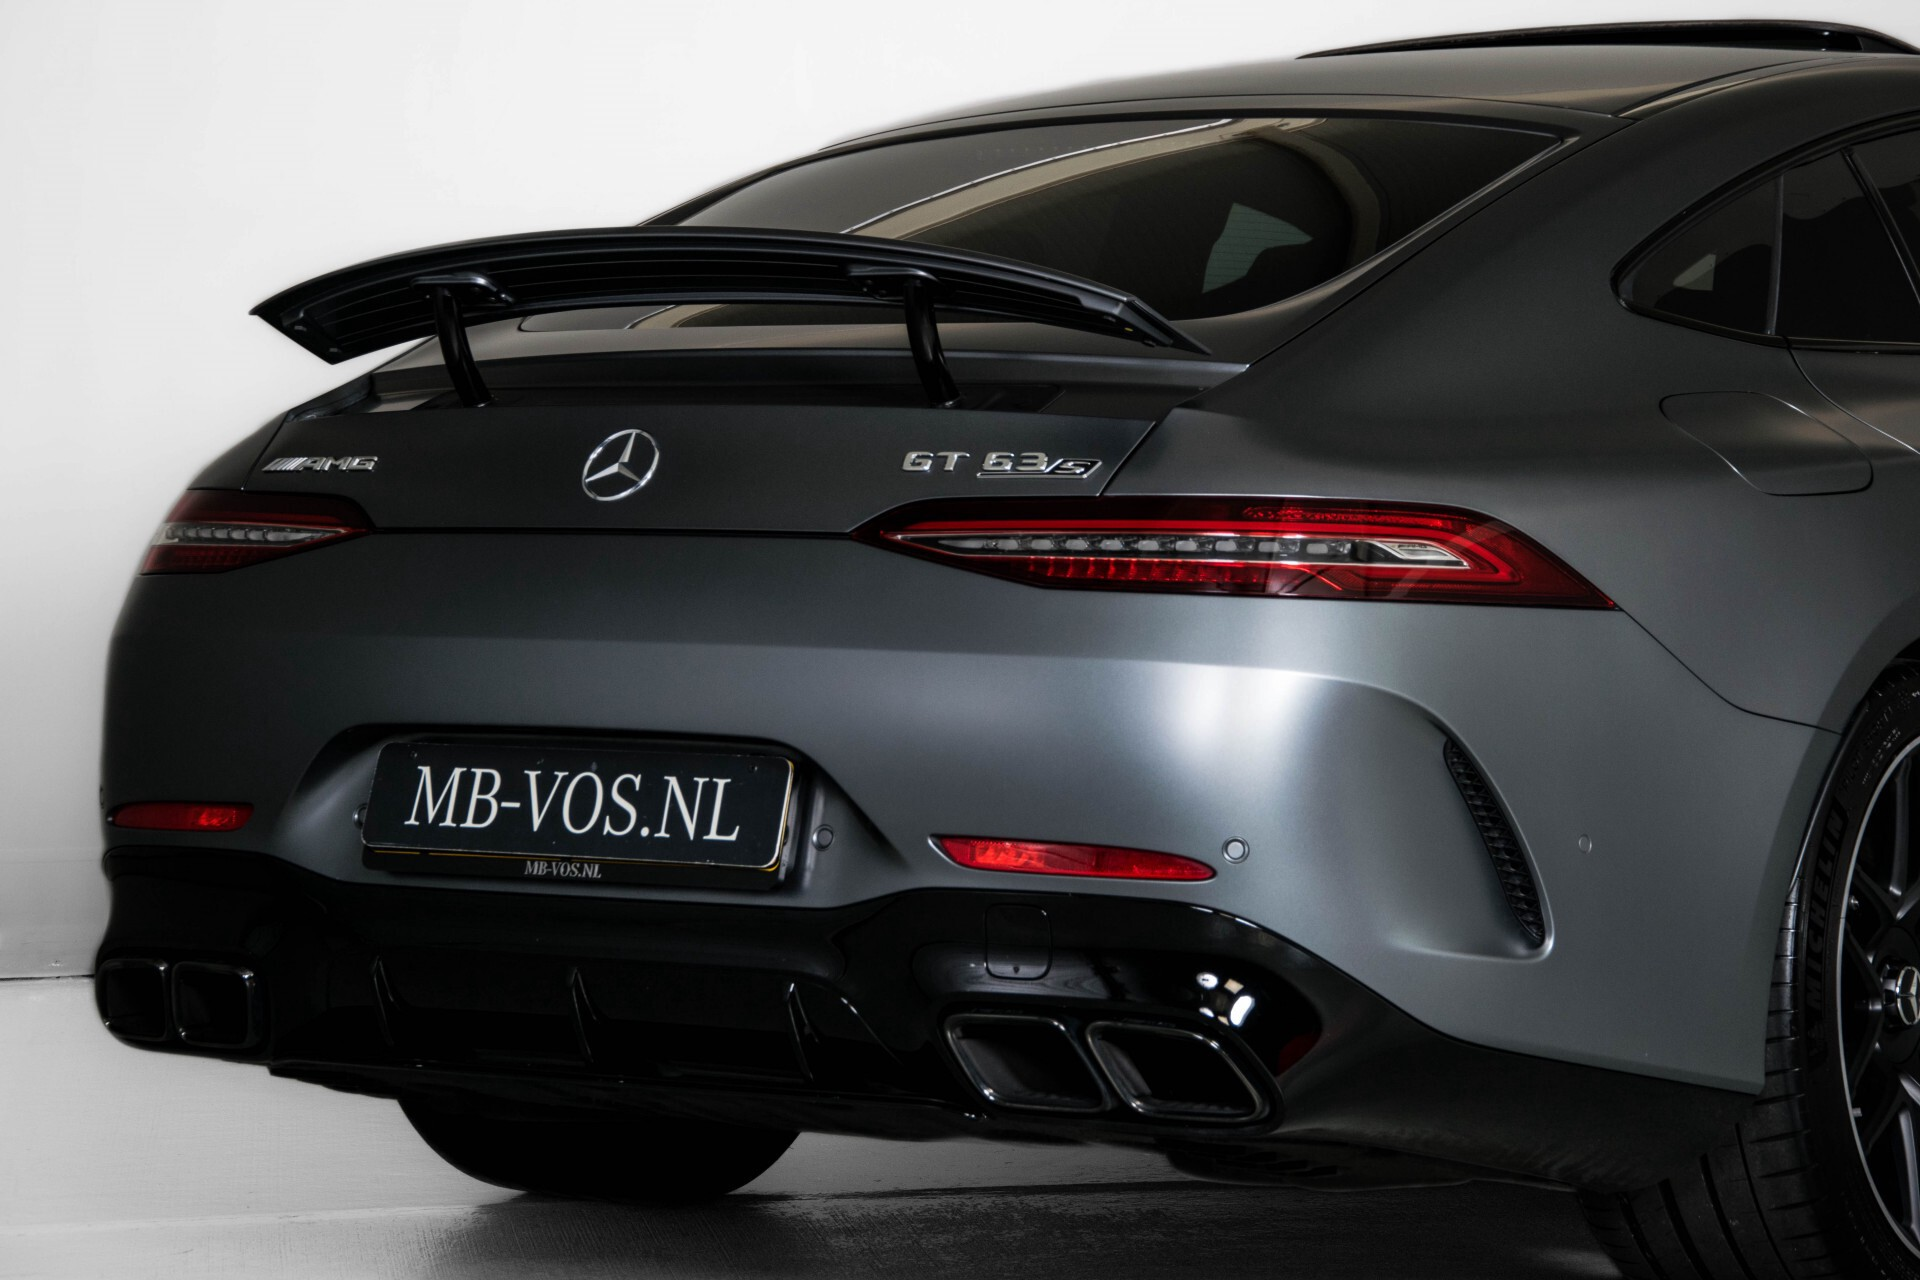 Mercedes-Benz AMG GT 4-Door Coupe 63 S 4+ Ceramic/Designo/Carbon/Burmester 3D/TV/Massage Aut9 Foto 72